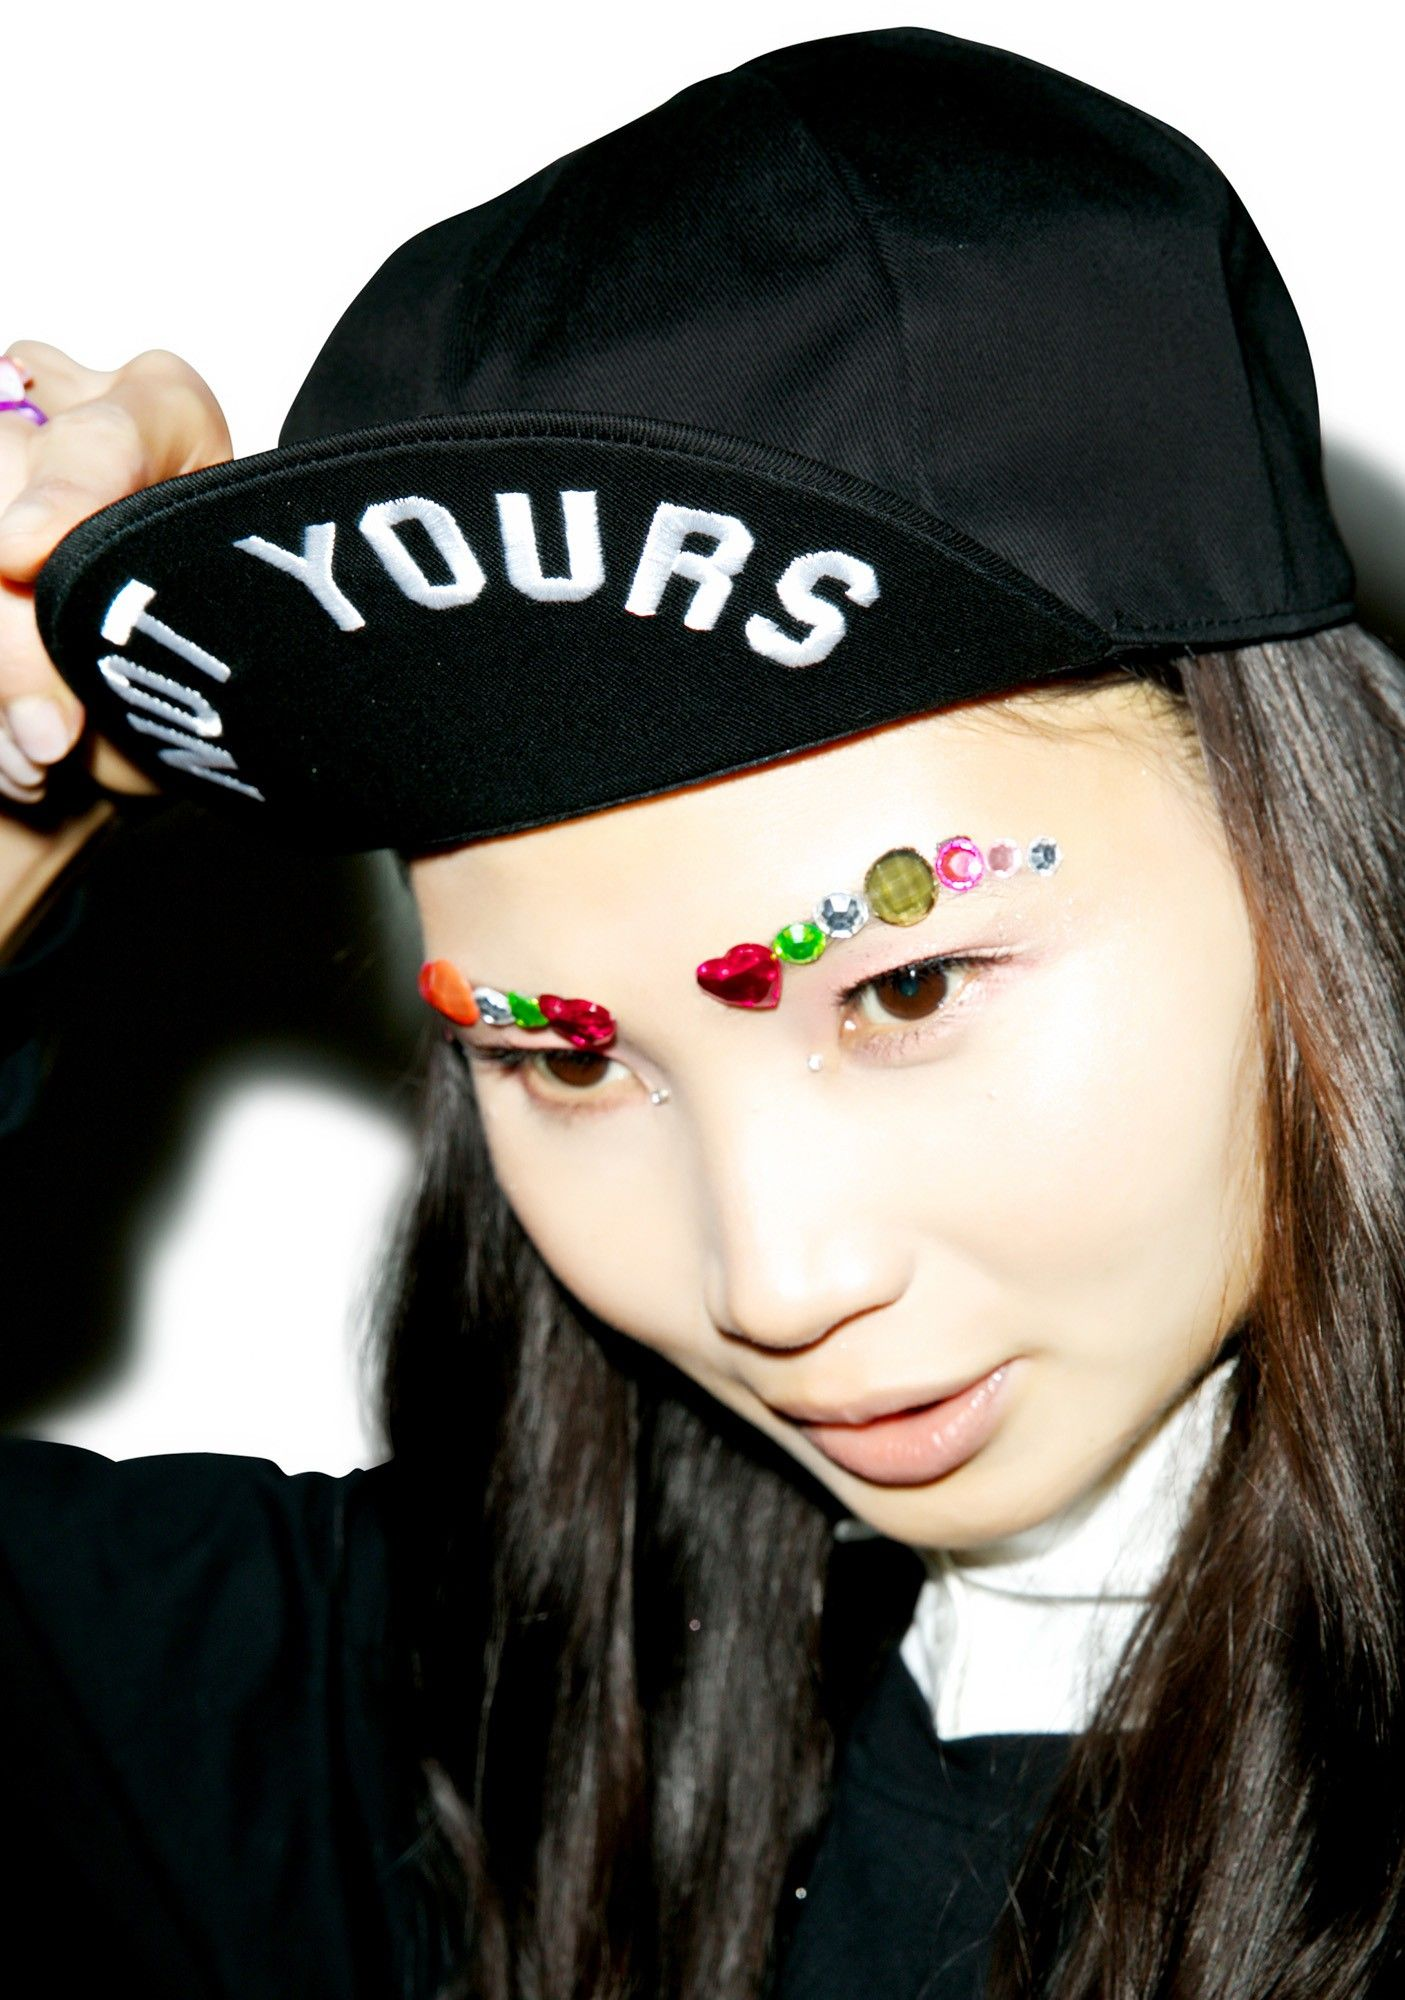 c026941e476 Not Yours Messenger Hat